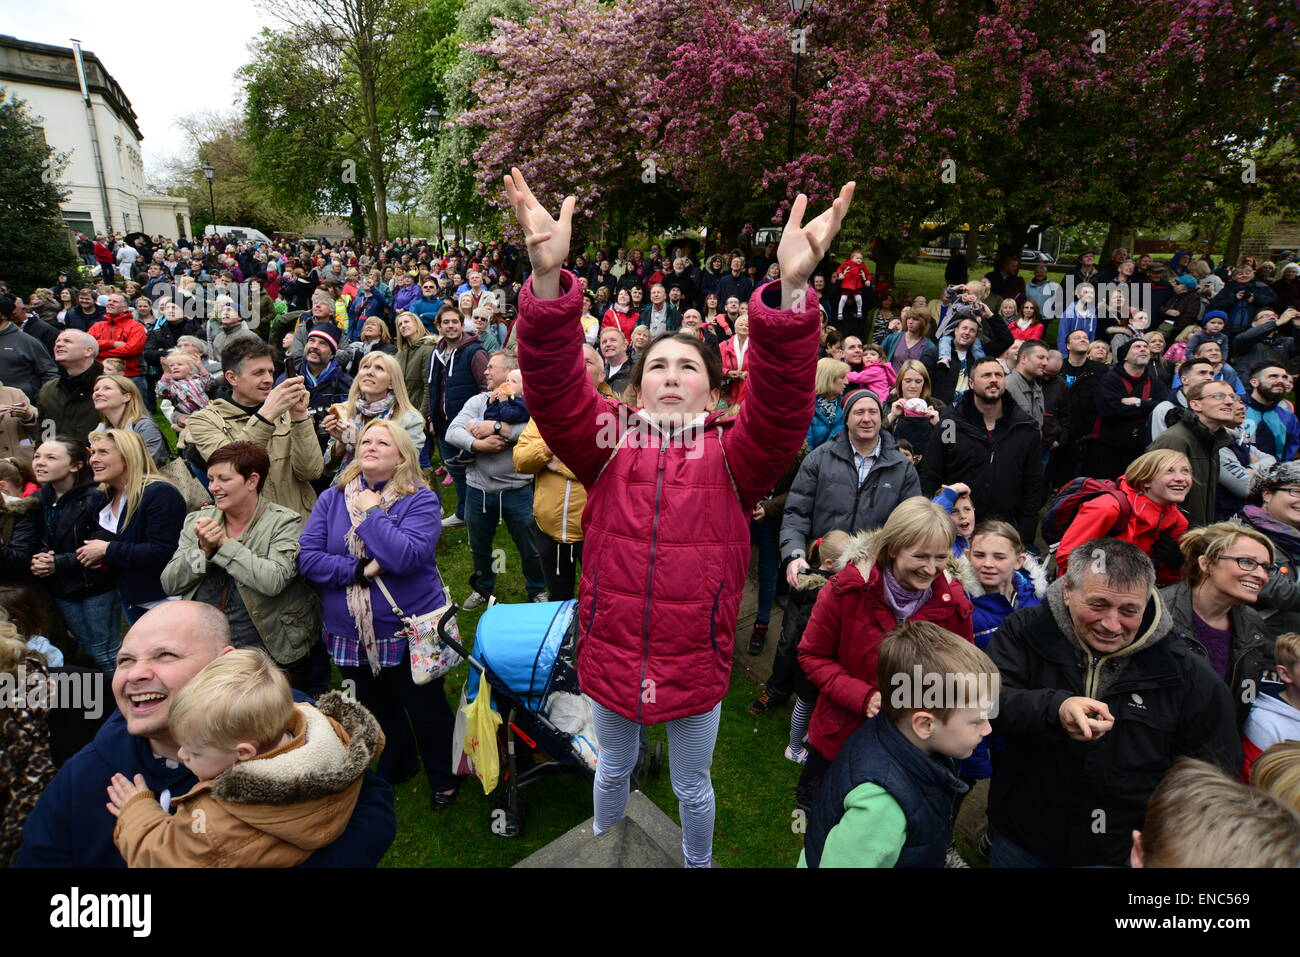 Rotherham, UK. 2nd May 2015. A young girl hoping to catch a piece of bread which is thrown from the church tower at Wath All Saints Parish Church near Rotherham, South Yorkshire. One hundred bread bun are thrown to the waiting crowds below as part of the annual Wath Festival. Picture: Scott Bairstow/Alamy Stock Photo